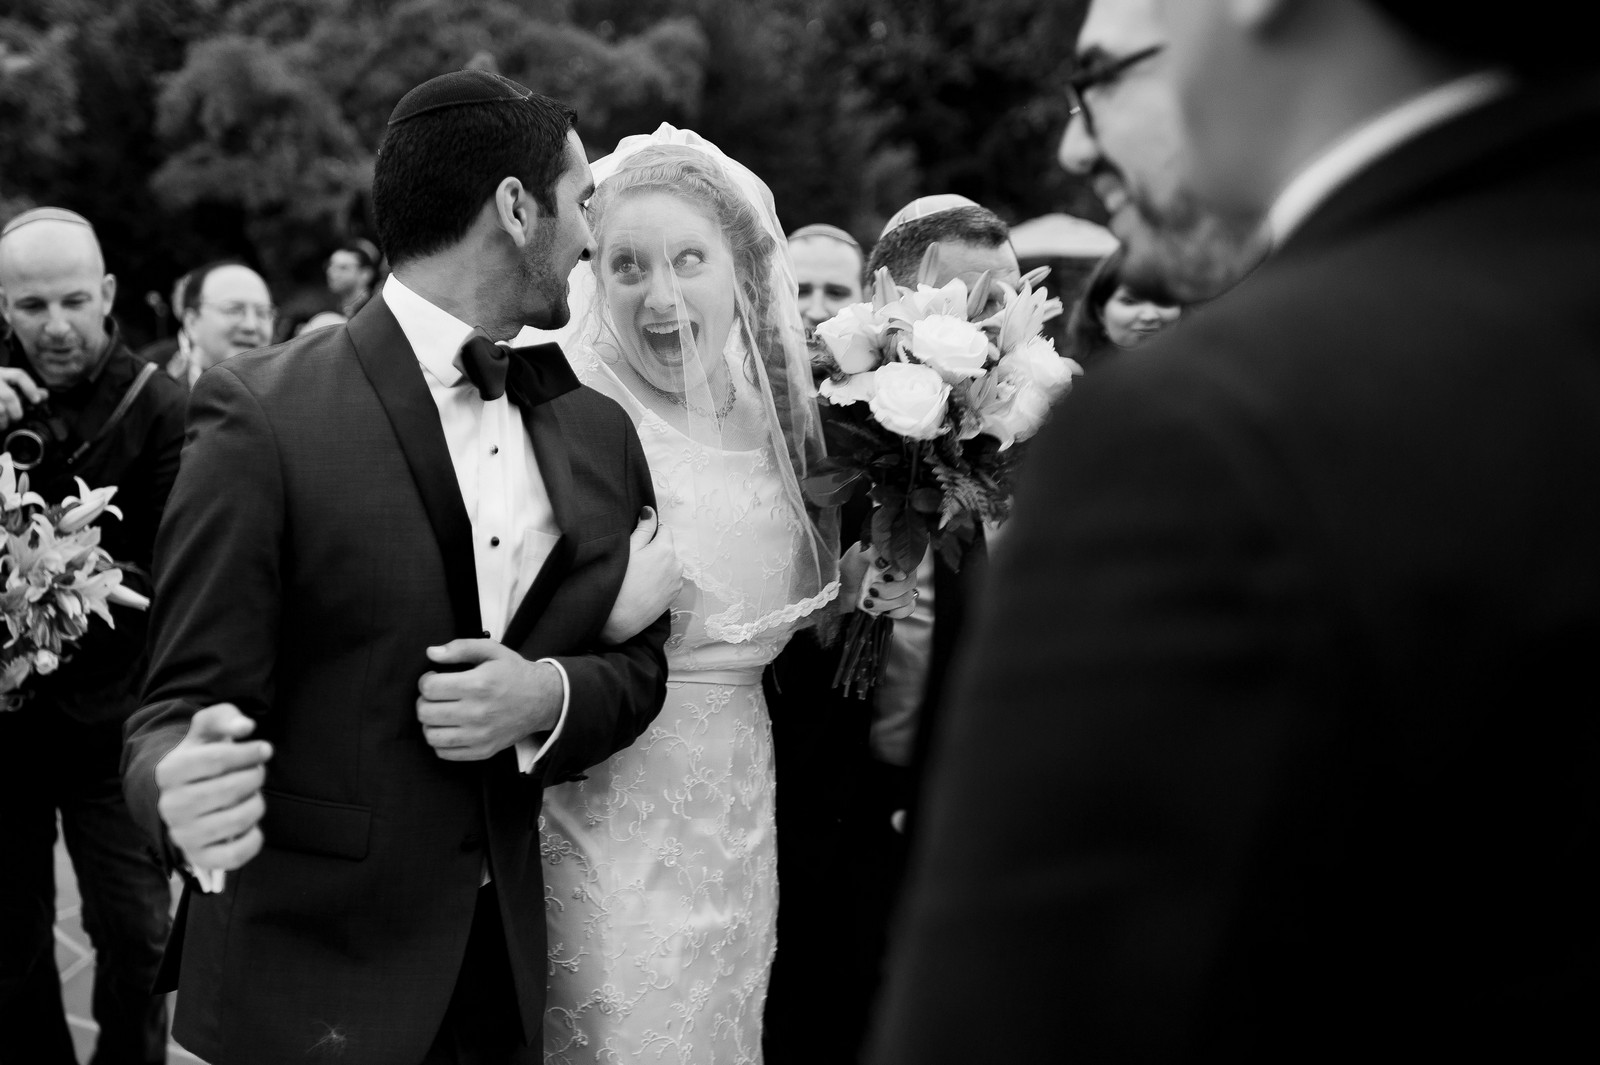 Sam and Yishai's Modern Orthodox Jewish Wedding at Crest Hollow Country Club, Woodbury NY, New York Photos by Chaim Schvarcz, Bride Groom